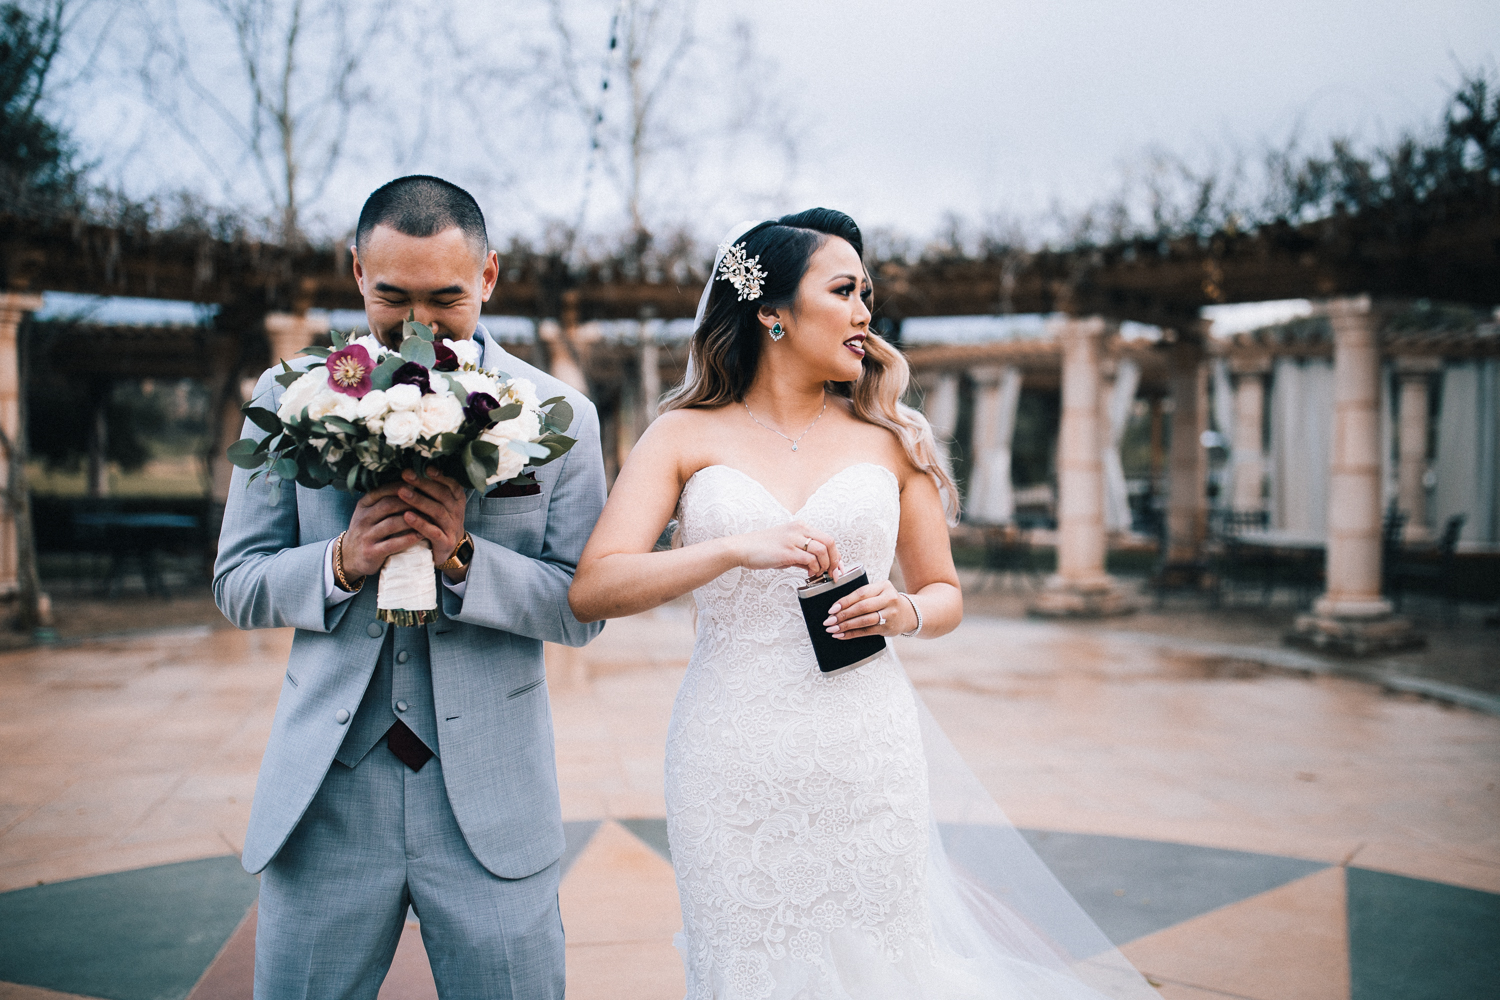 2019_01_ 202019.01.20 Santiago Wedding Blog Photos Edited For Web 0079.jpg